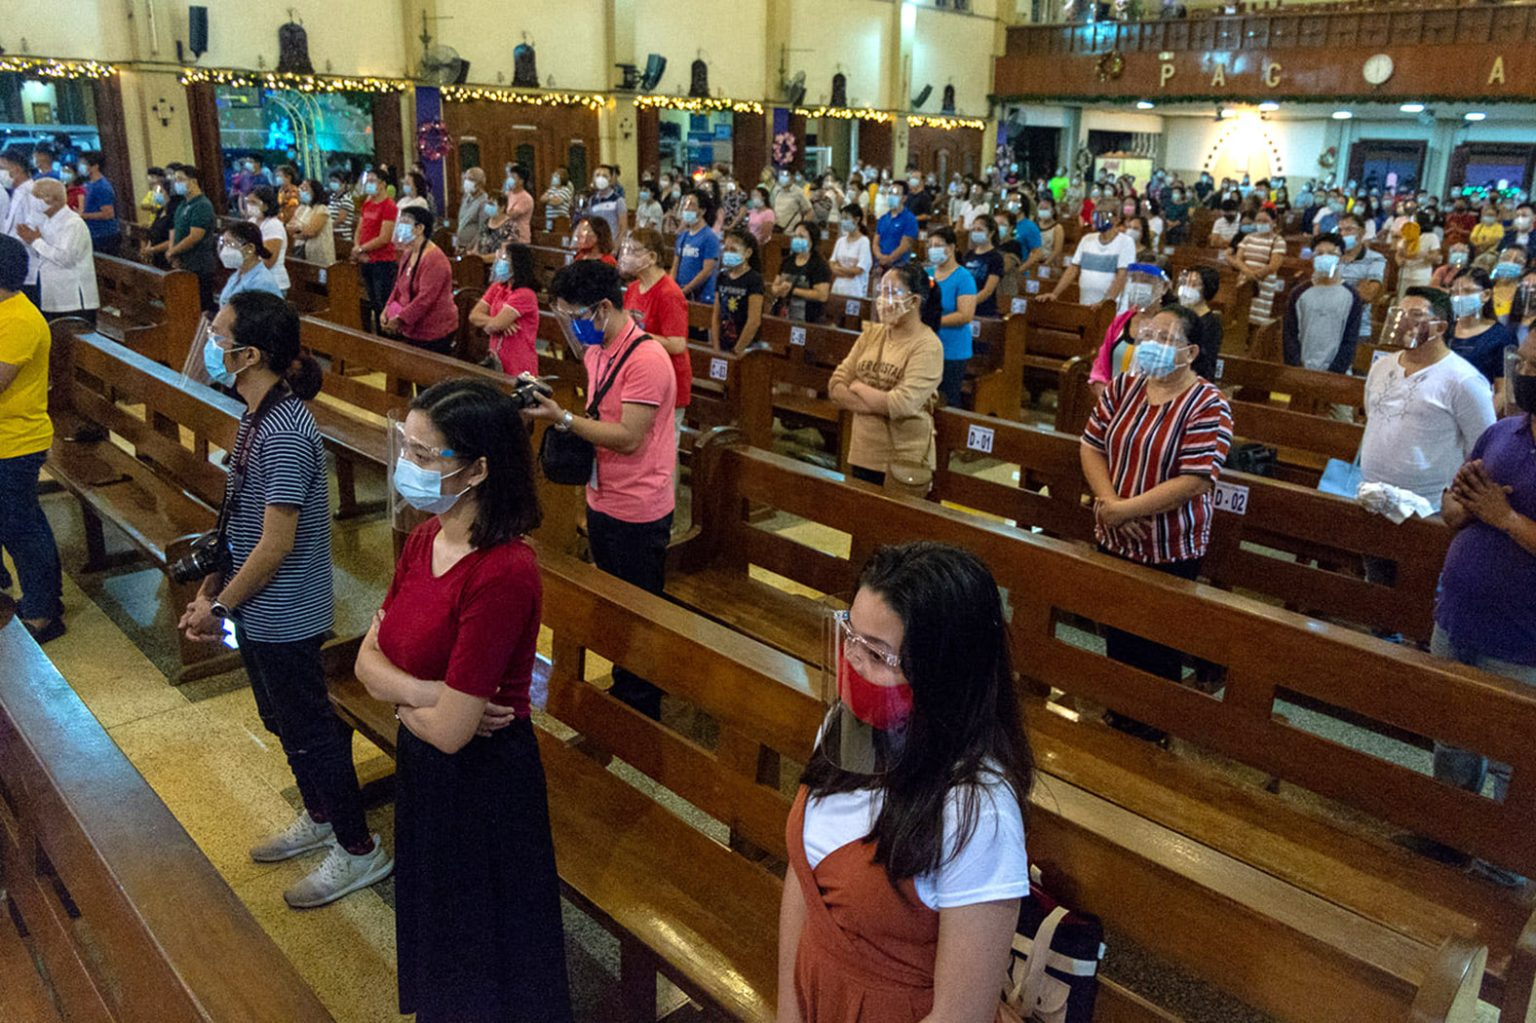 Church renews commitment to abolish 'arancel' despite pandemic